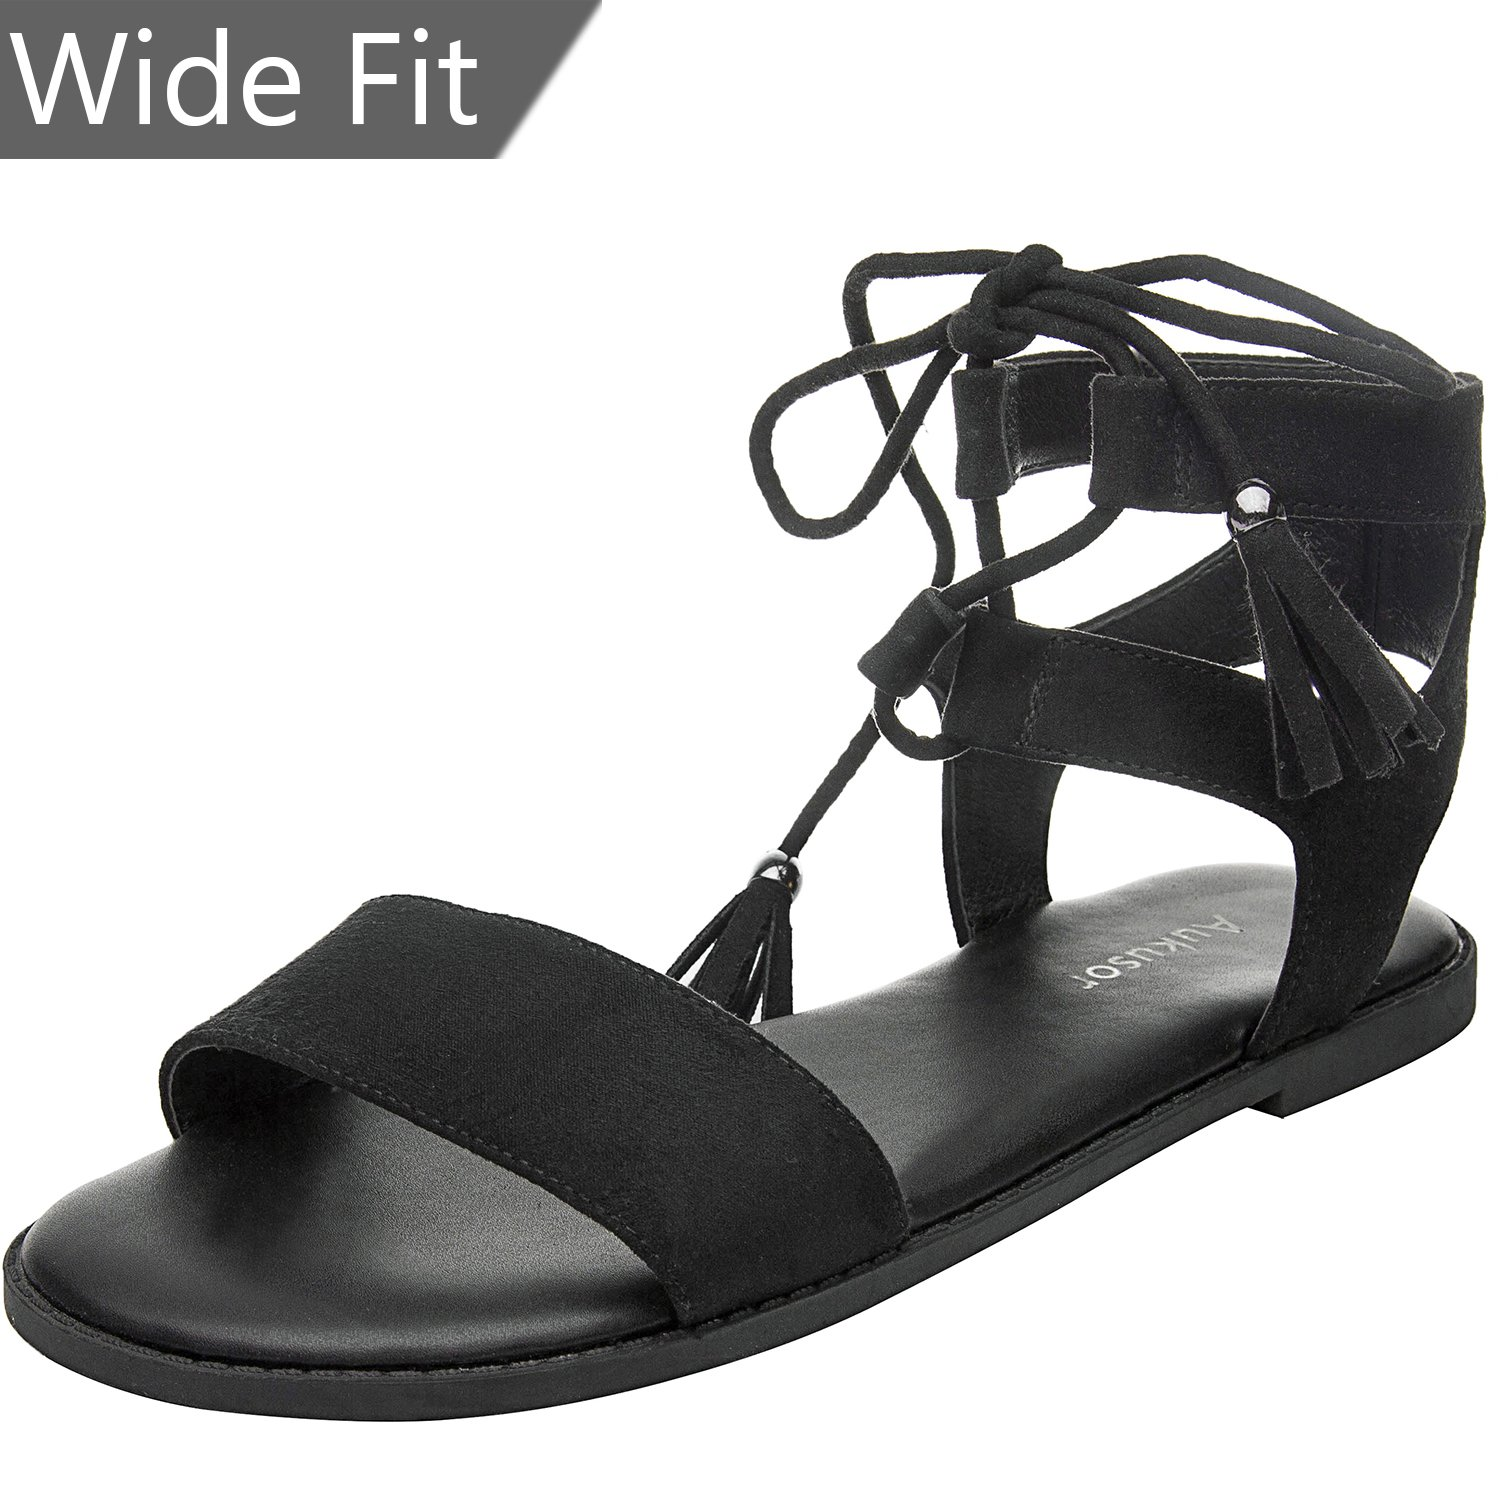 Women's Wide Width Flat Sandals - Comfortable Lace up Ankle Strap Casual Shoes.(180308 Black,9WW)